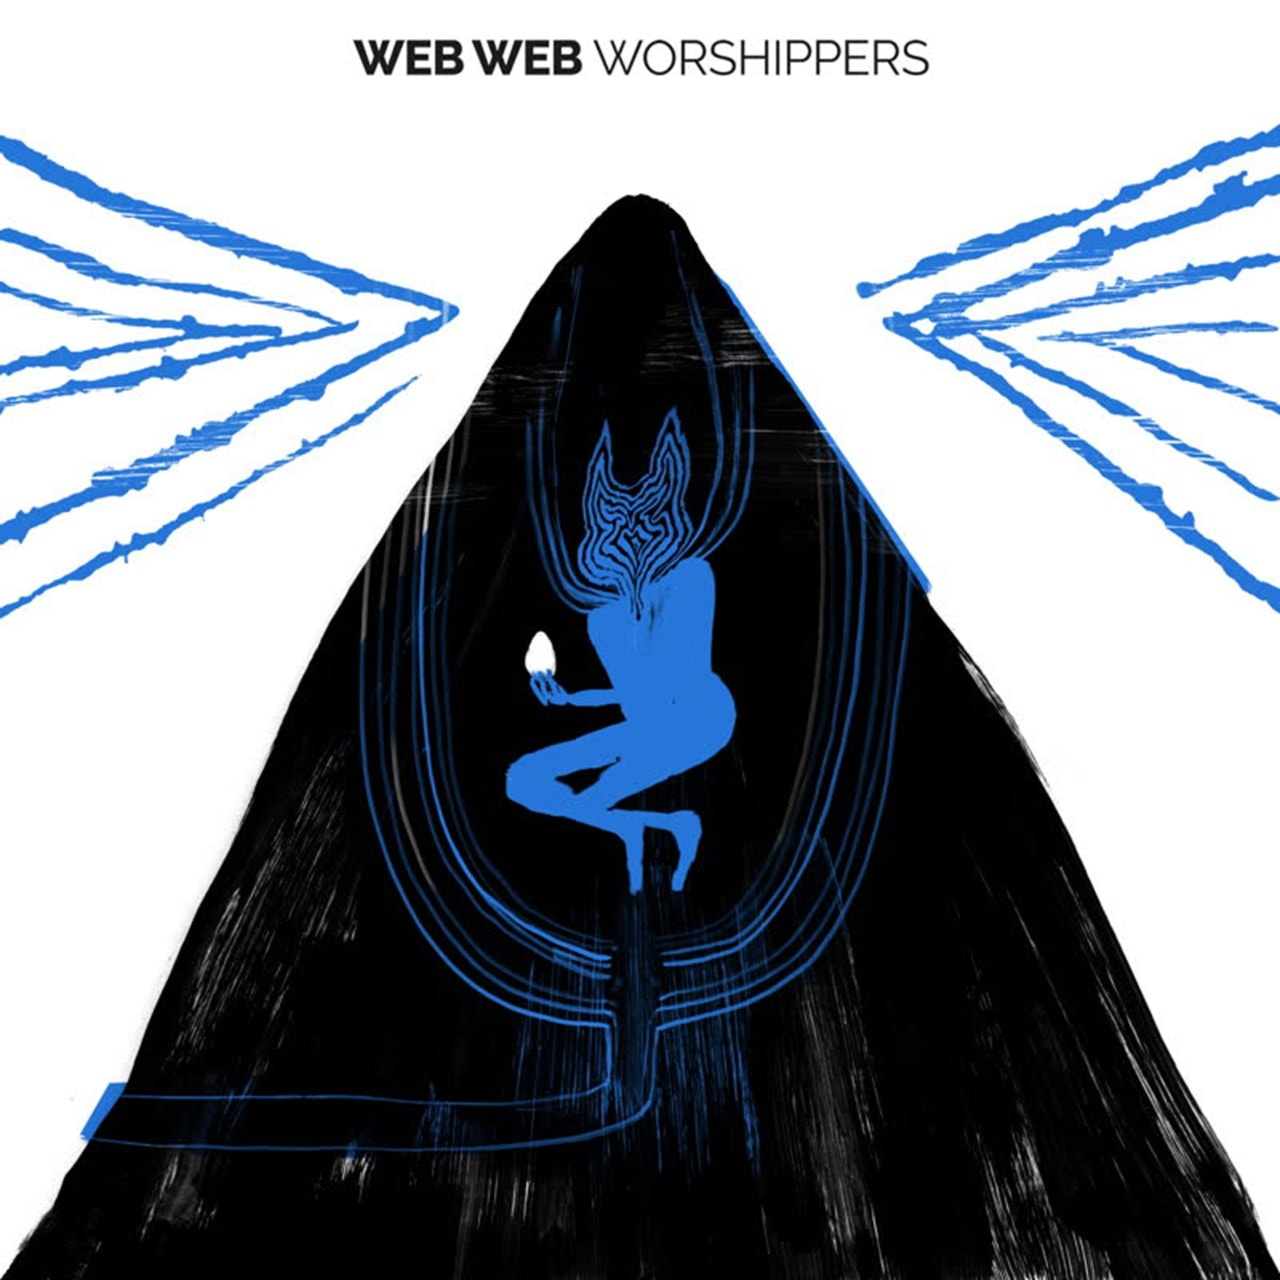 Worshippers - 1